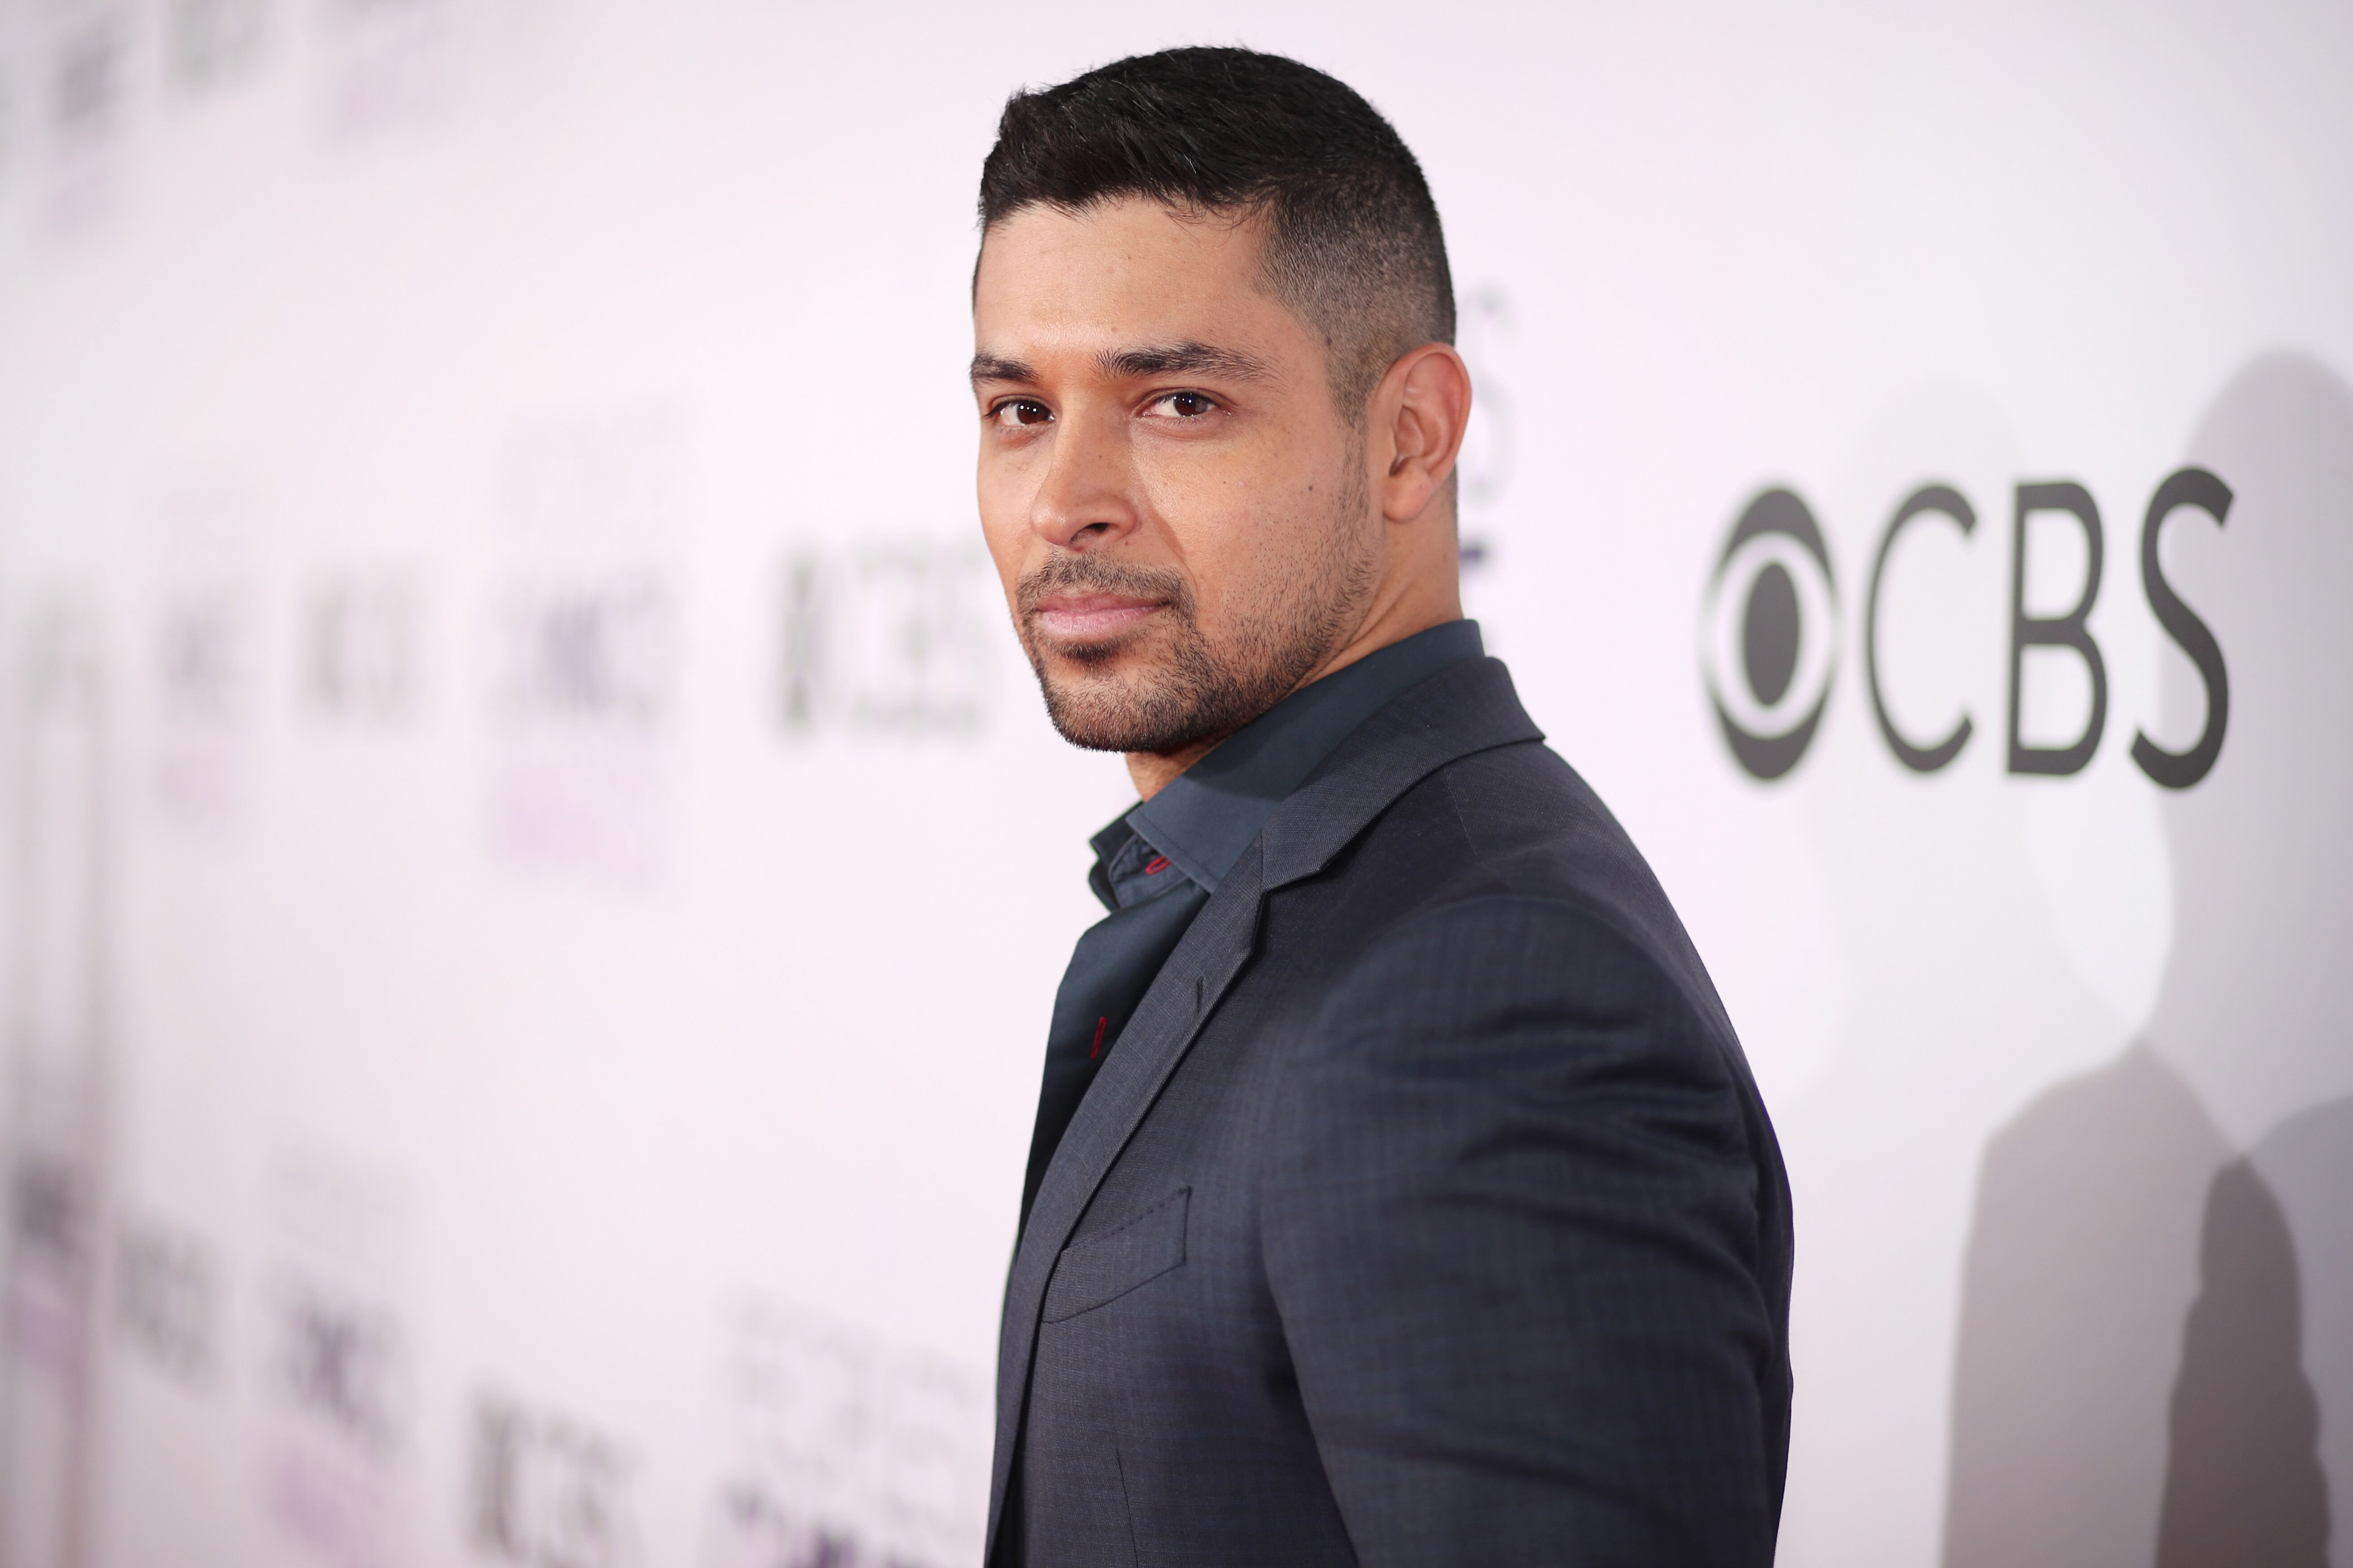 Wilmer Valderrama attends the People's Choice Awards 2017 at Microsoft Theater in Los Angeles, California | Photo: Getty Images